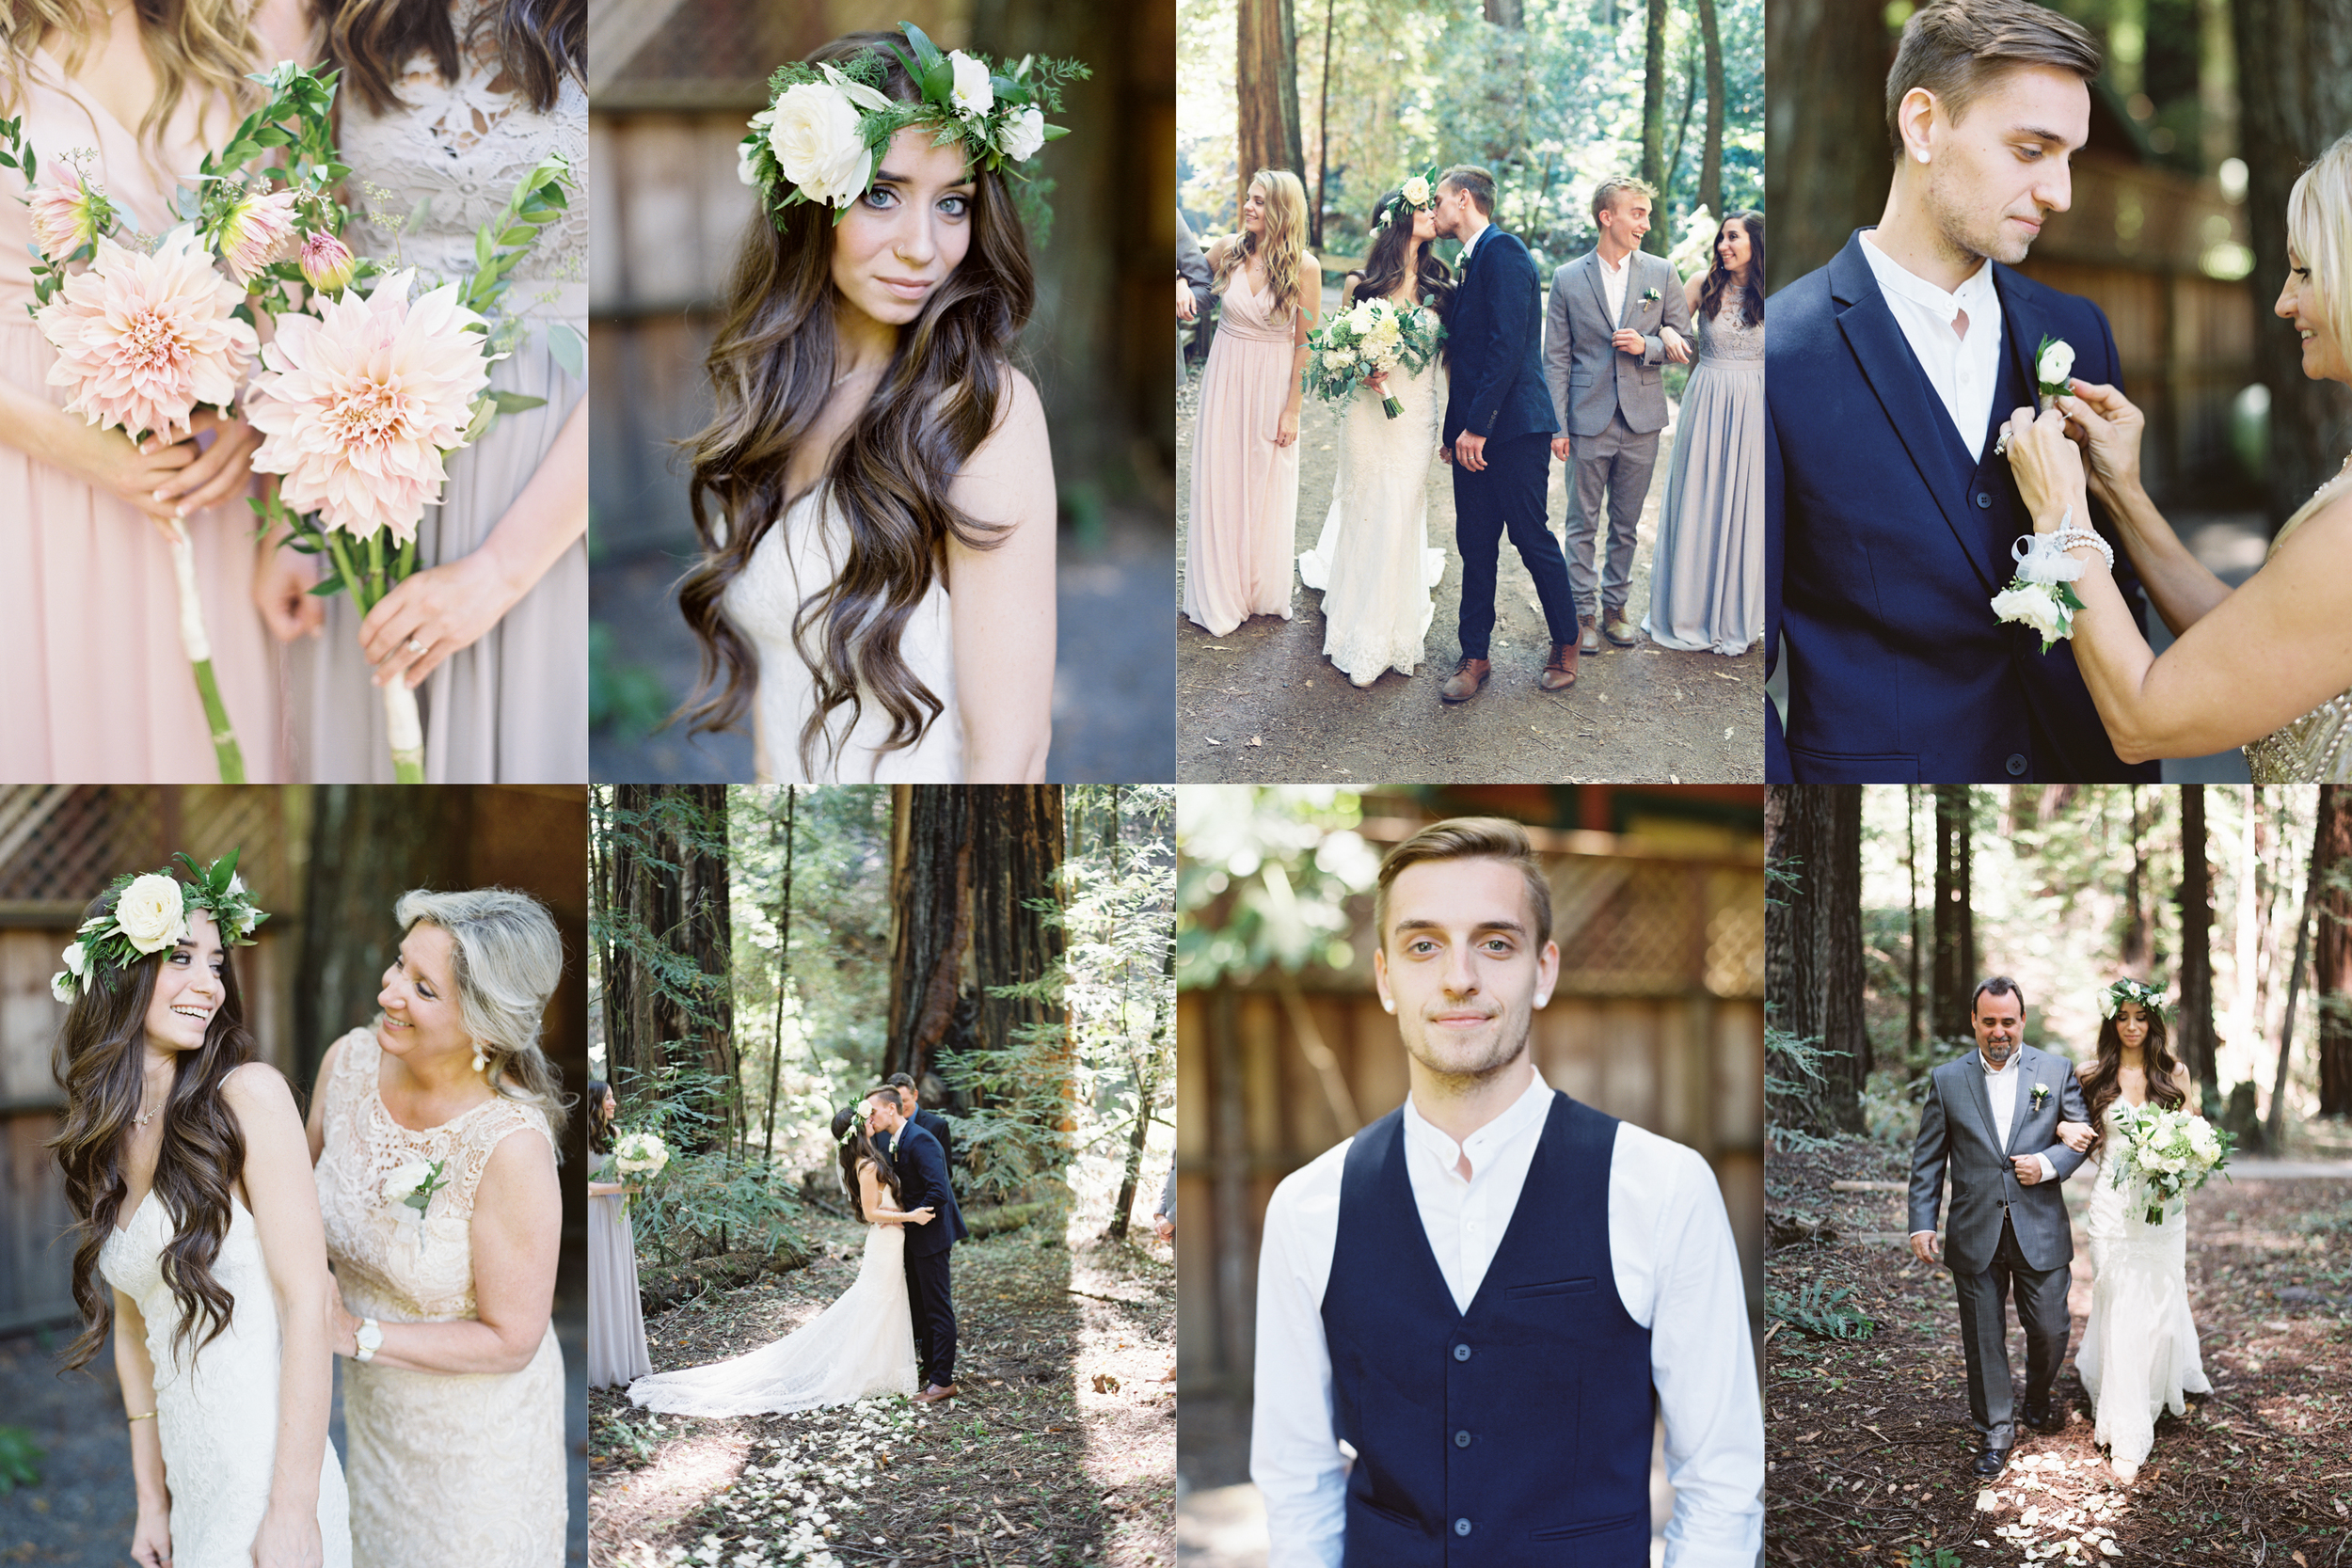 Meghan Mehan Photography - Fine Art Film Wedding Photographer - California | Napa | Sonoma | Italy | Destination 01.jpg